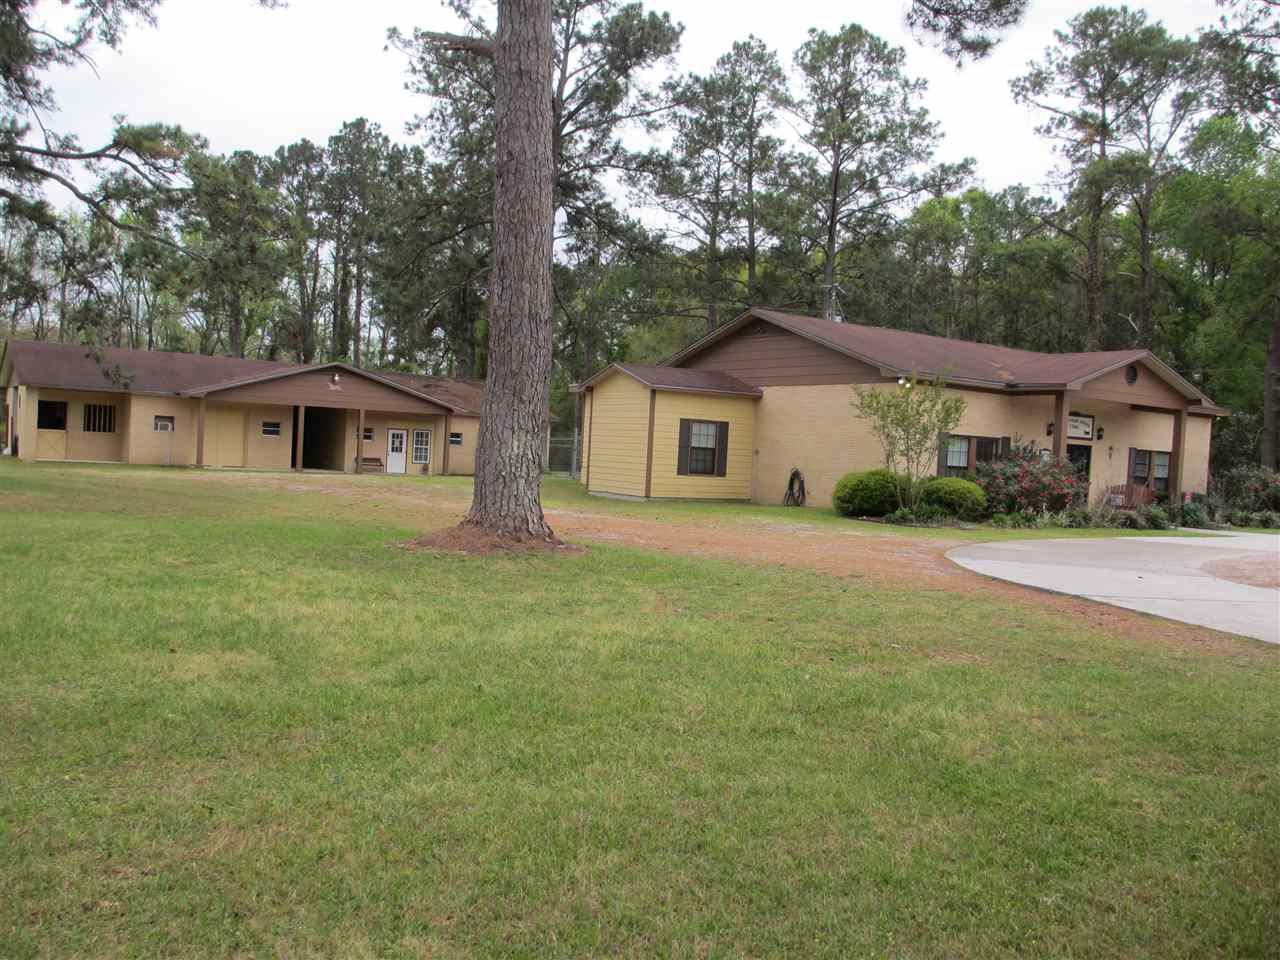 5902 Shady Rest Rd, Havana, FL 32333 - MLS#: 326975